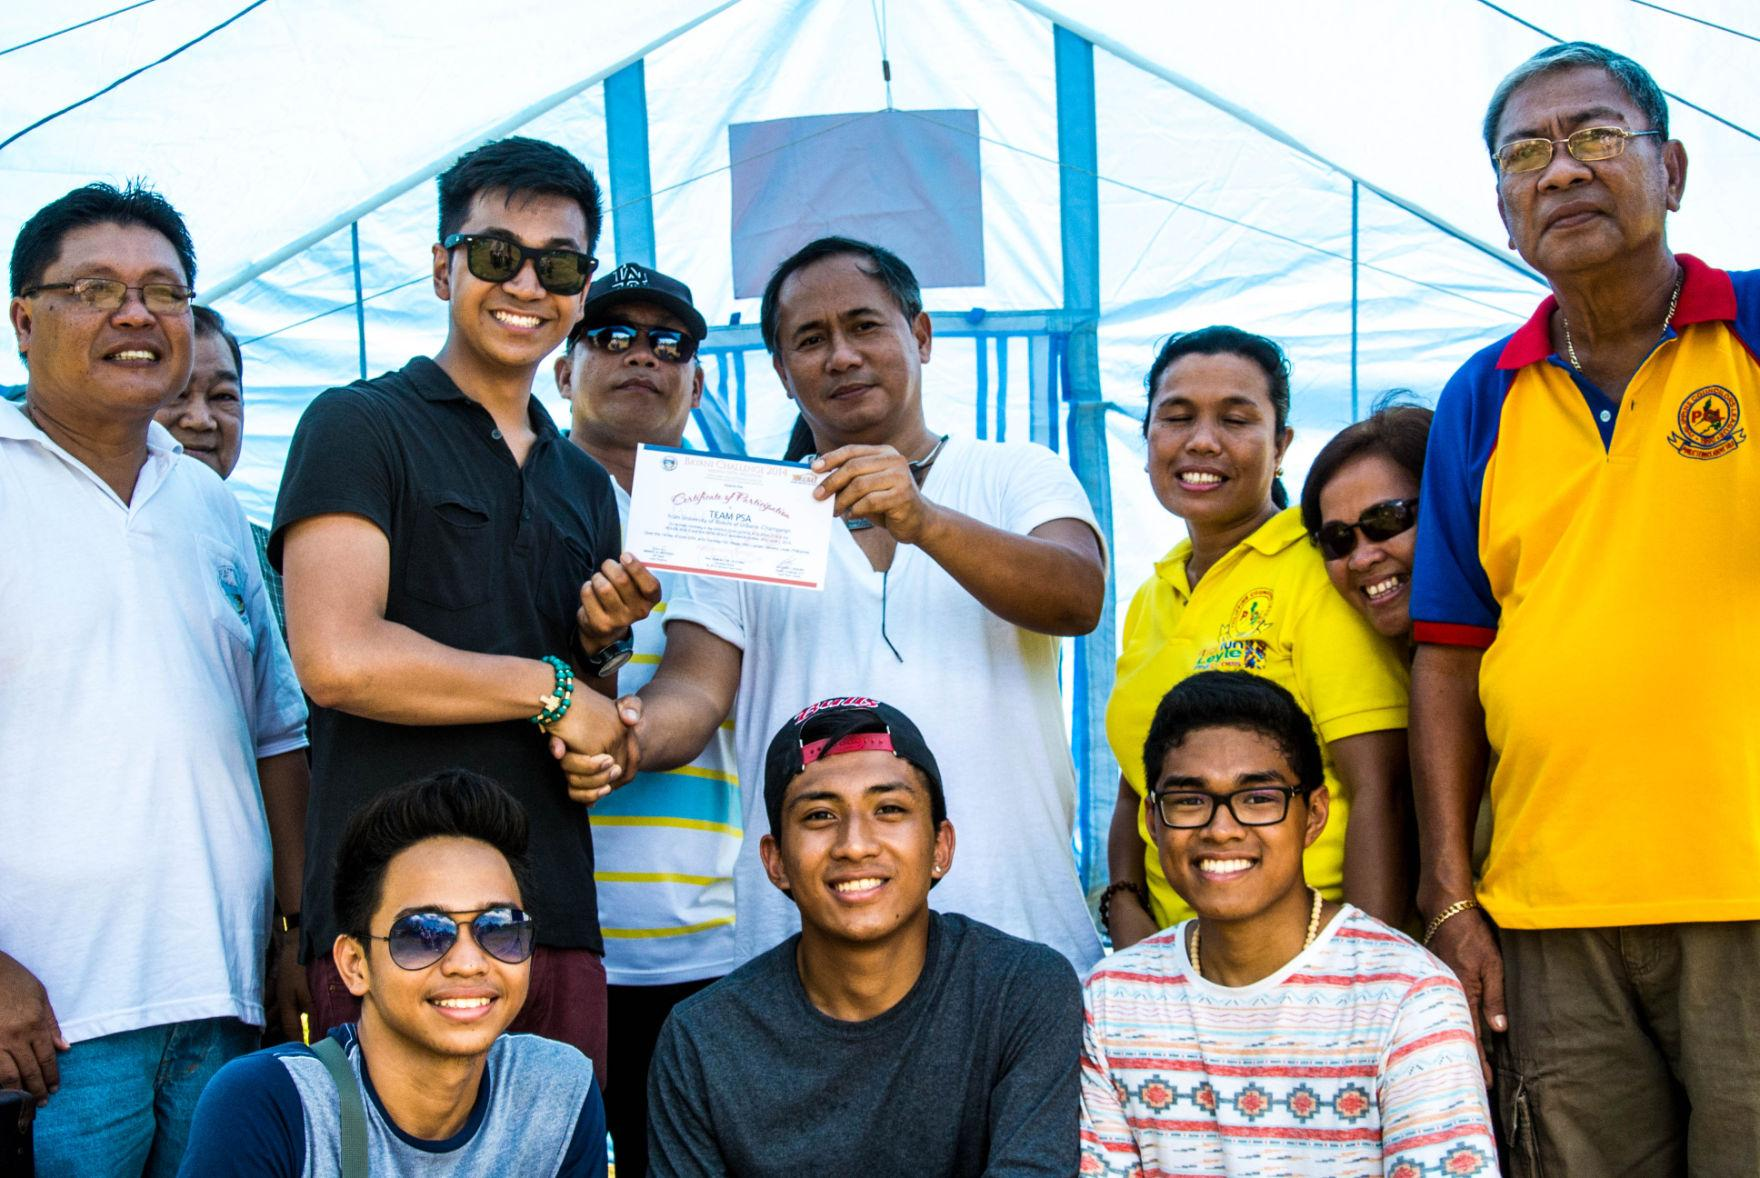 %3Cp%3EThree+University+students+from+the+Philippine+Student+Association+spent+two+weeks+in+the+summer+participating+in+a+service+trip+in+the+aftermath+of+Typhoon+Haiyan.%3C%2Fp%3E